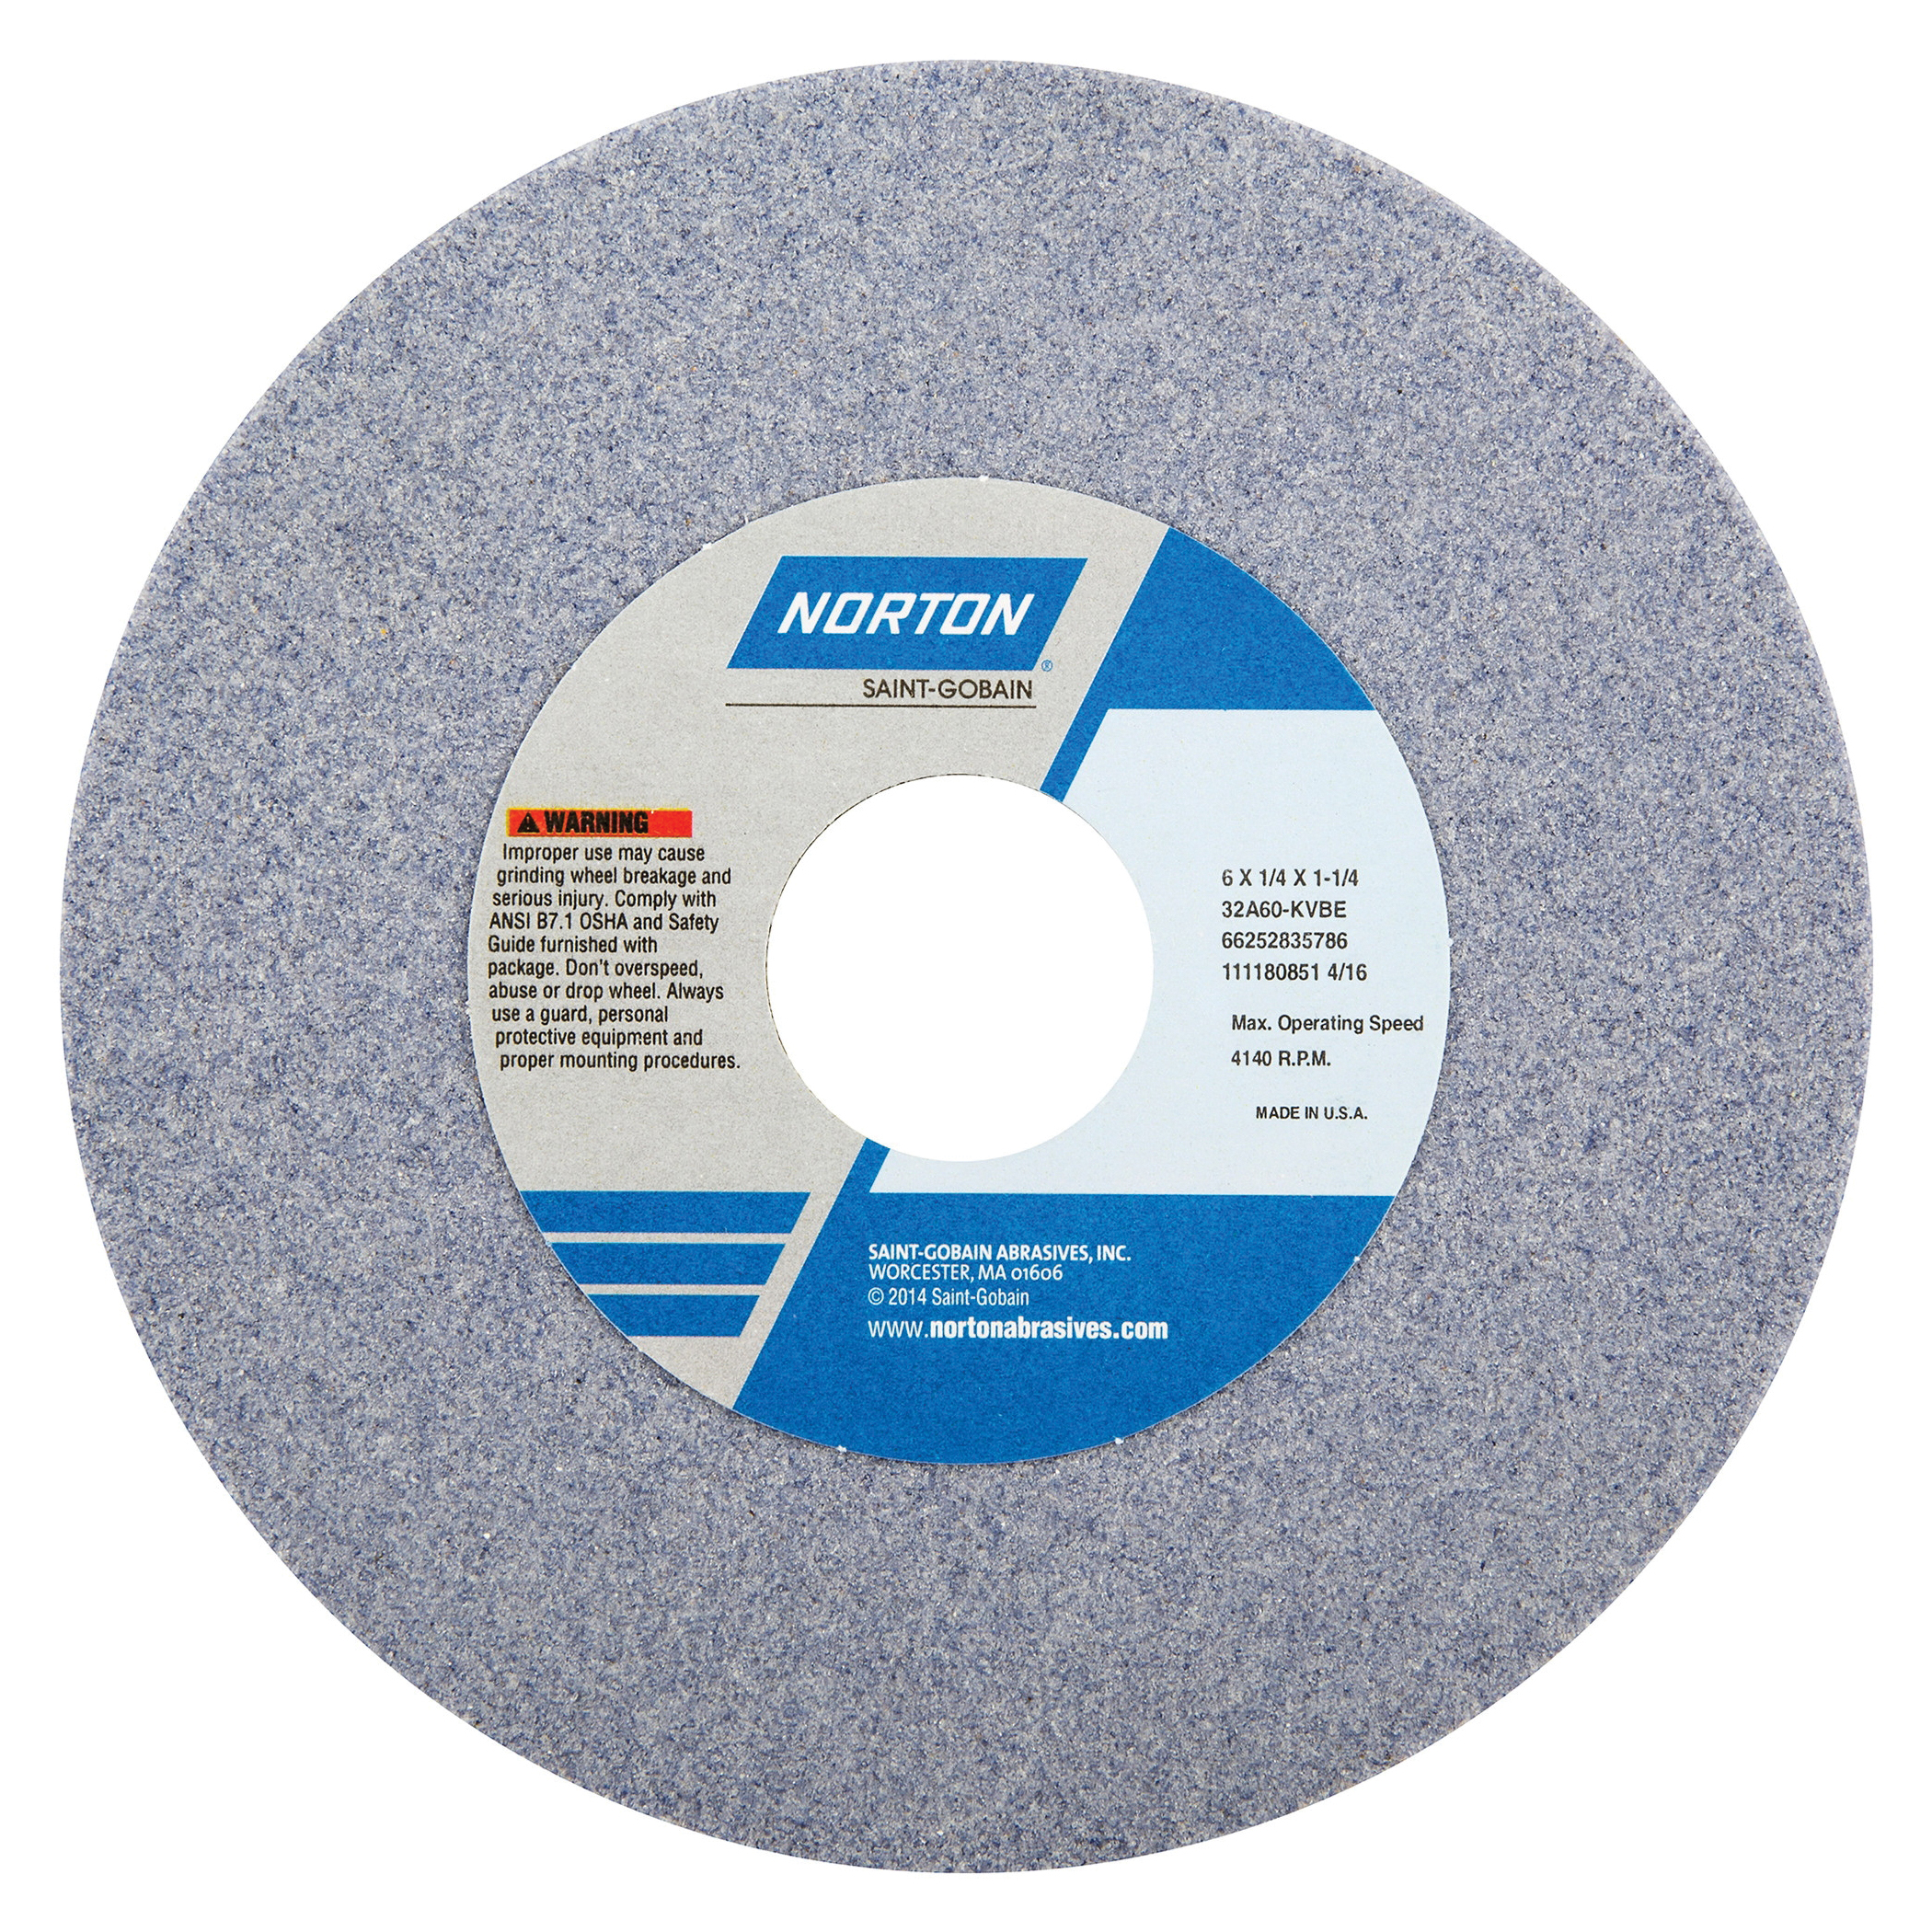 Norton® 66252835786 32A Straight Toolroom Wheel, 6 in Dia x 1/4 in THK, 1-1/4 in Center Hole, 60 Grit, Aluminum Oxide Abrasive